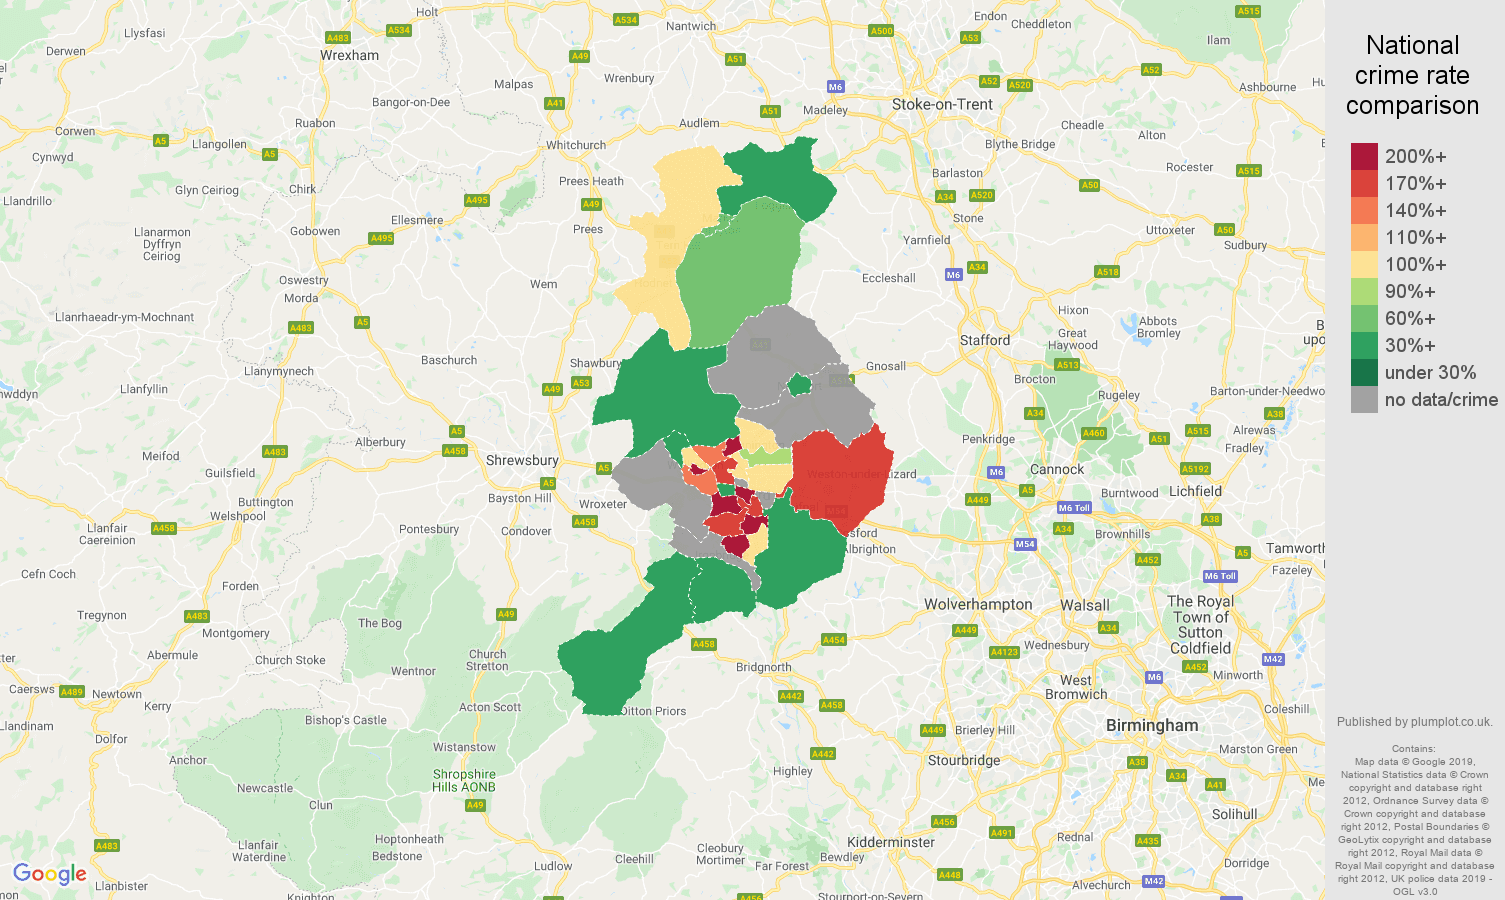 Telford possession of weapons crime rate comparison map